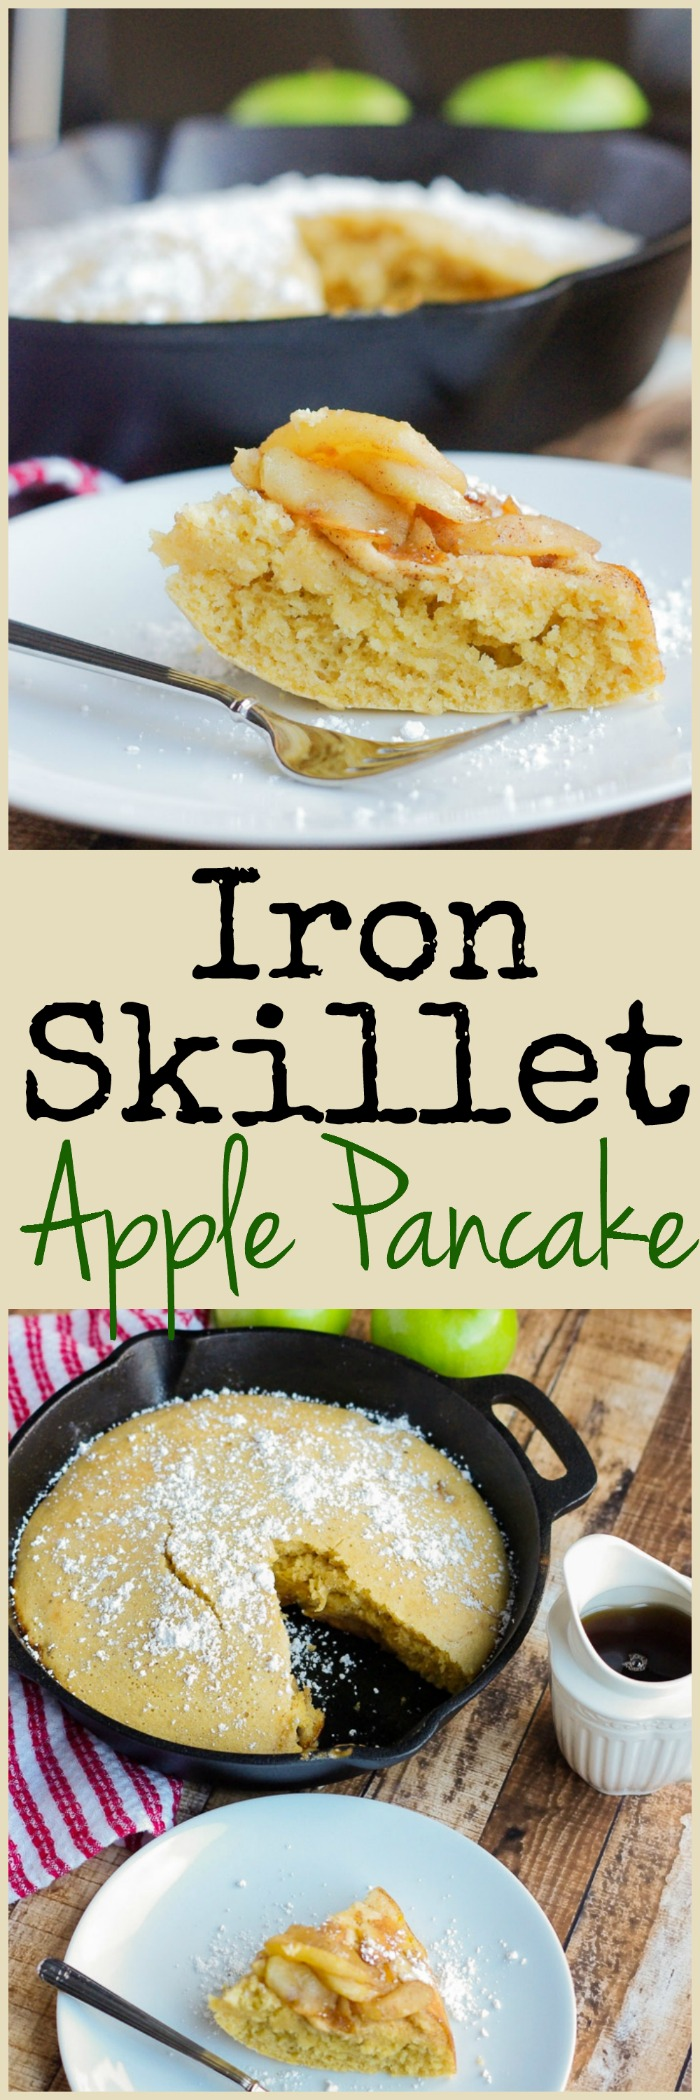 Easy Iron Skillet Apple Pancake | www.homeandplate.com | With this sweet and moist apple skillet pancake they'll be no more waiting to flip the flap jacks.